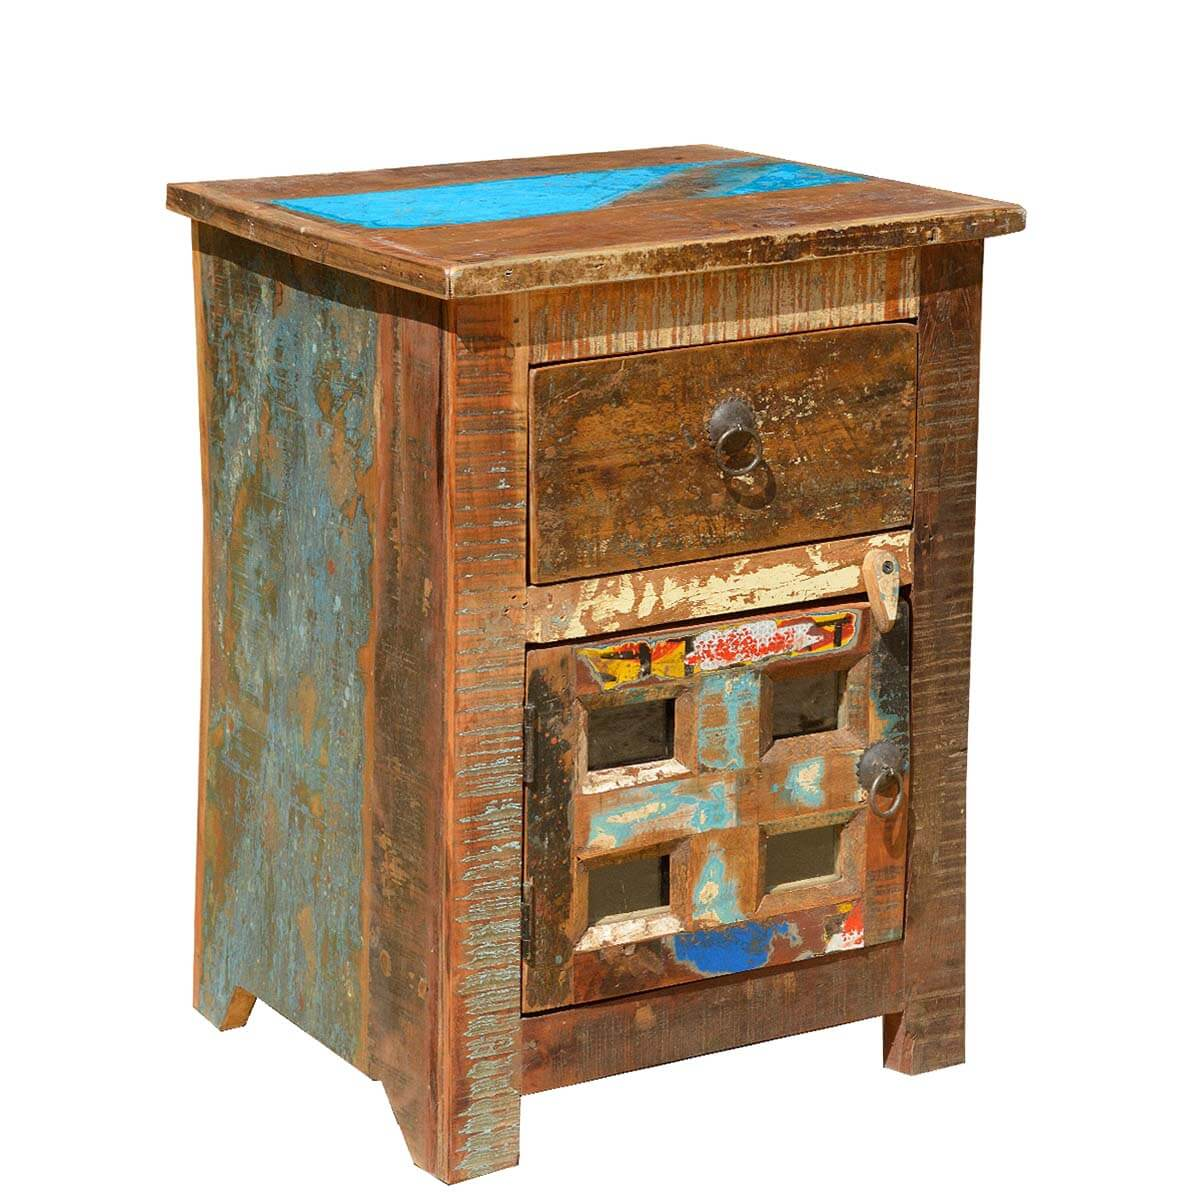 Rustic Old Reclaimed Wood Distressed Bedside End Table